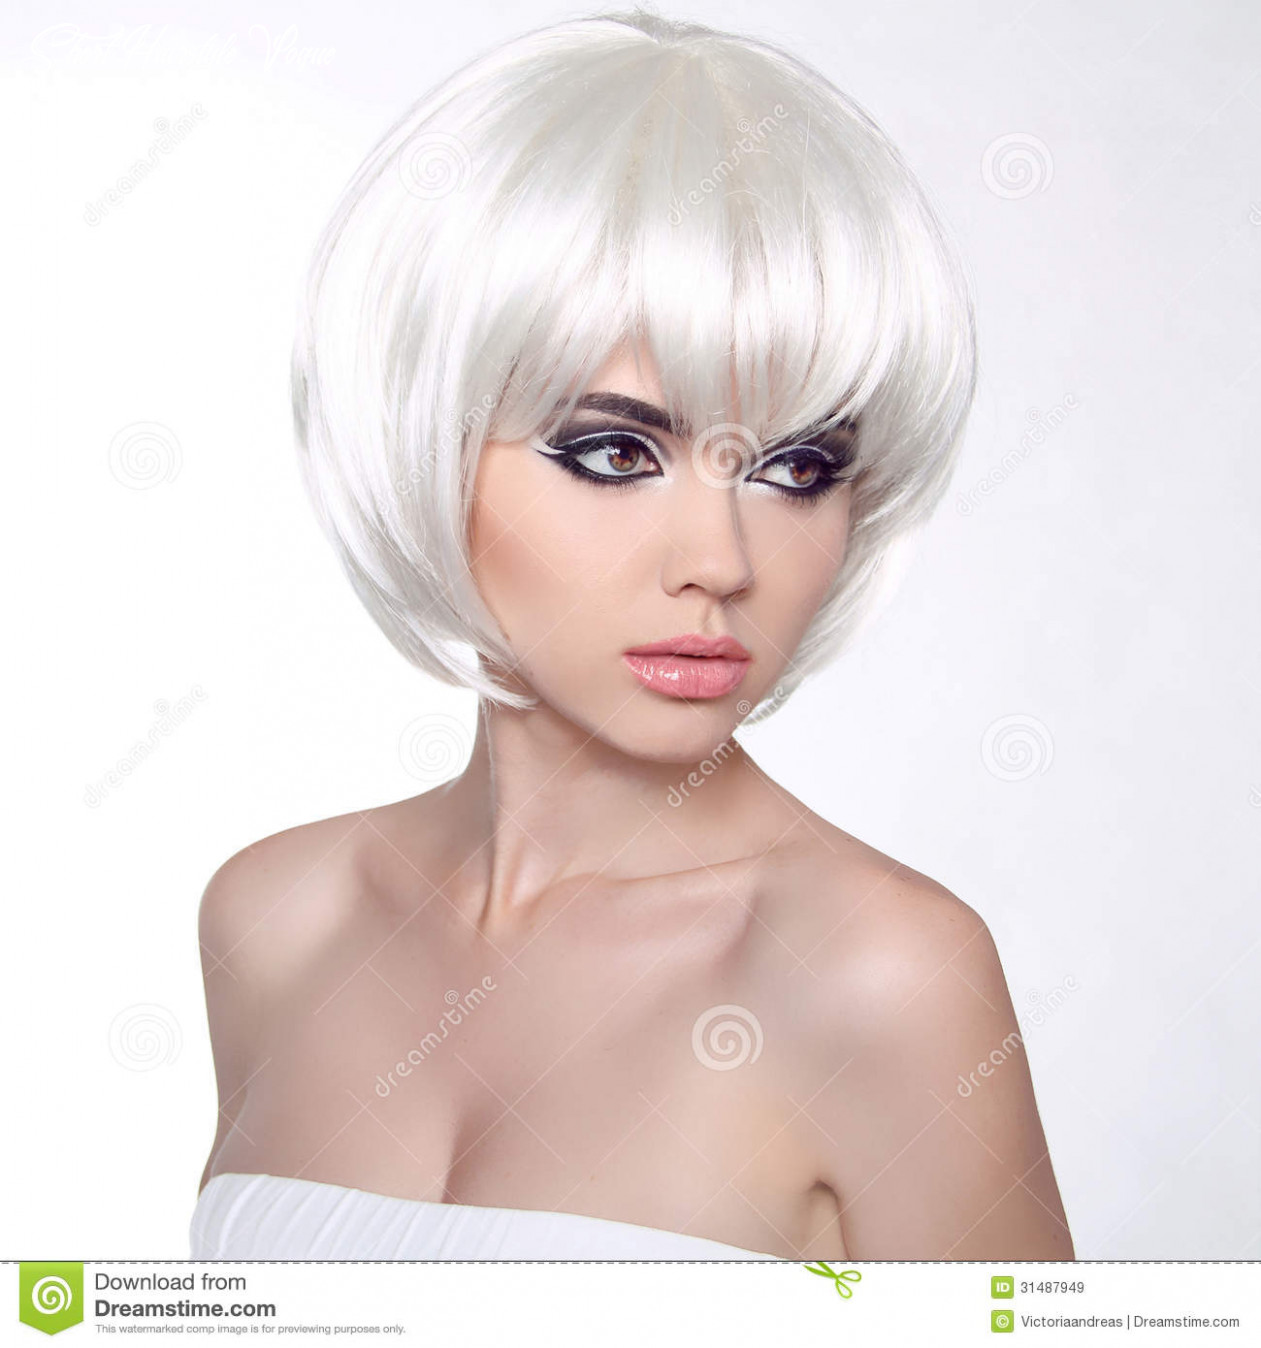 Fashion portrait with white short hair haircut hairstyle fringe